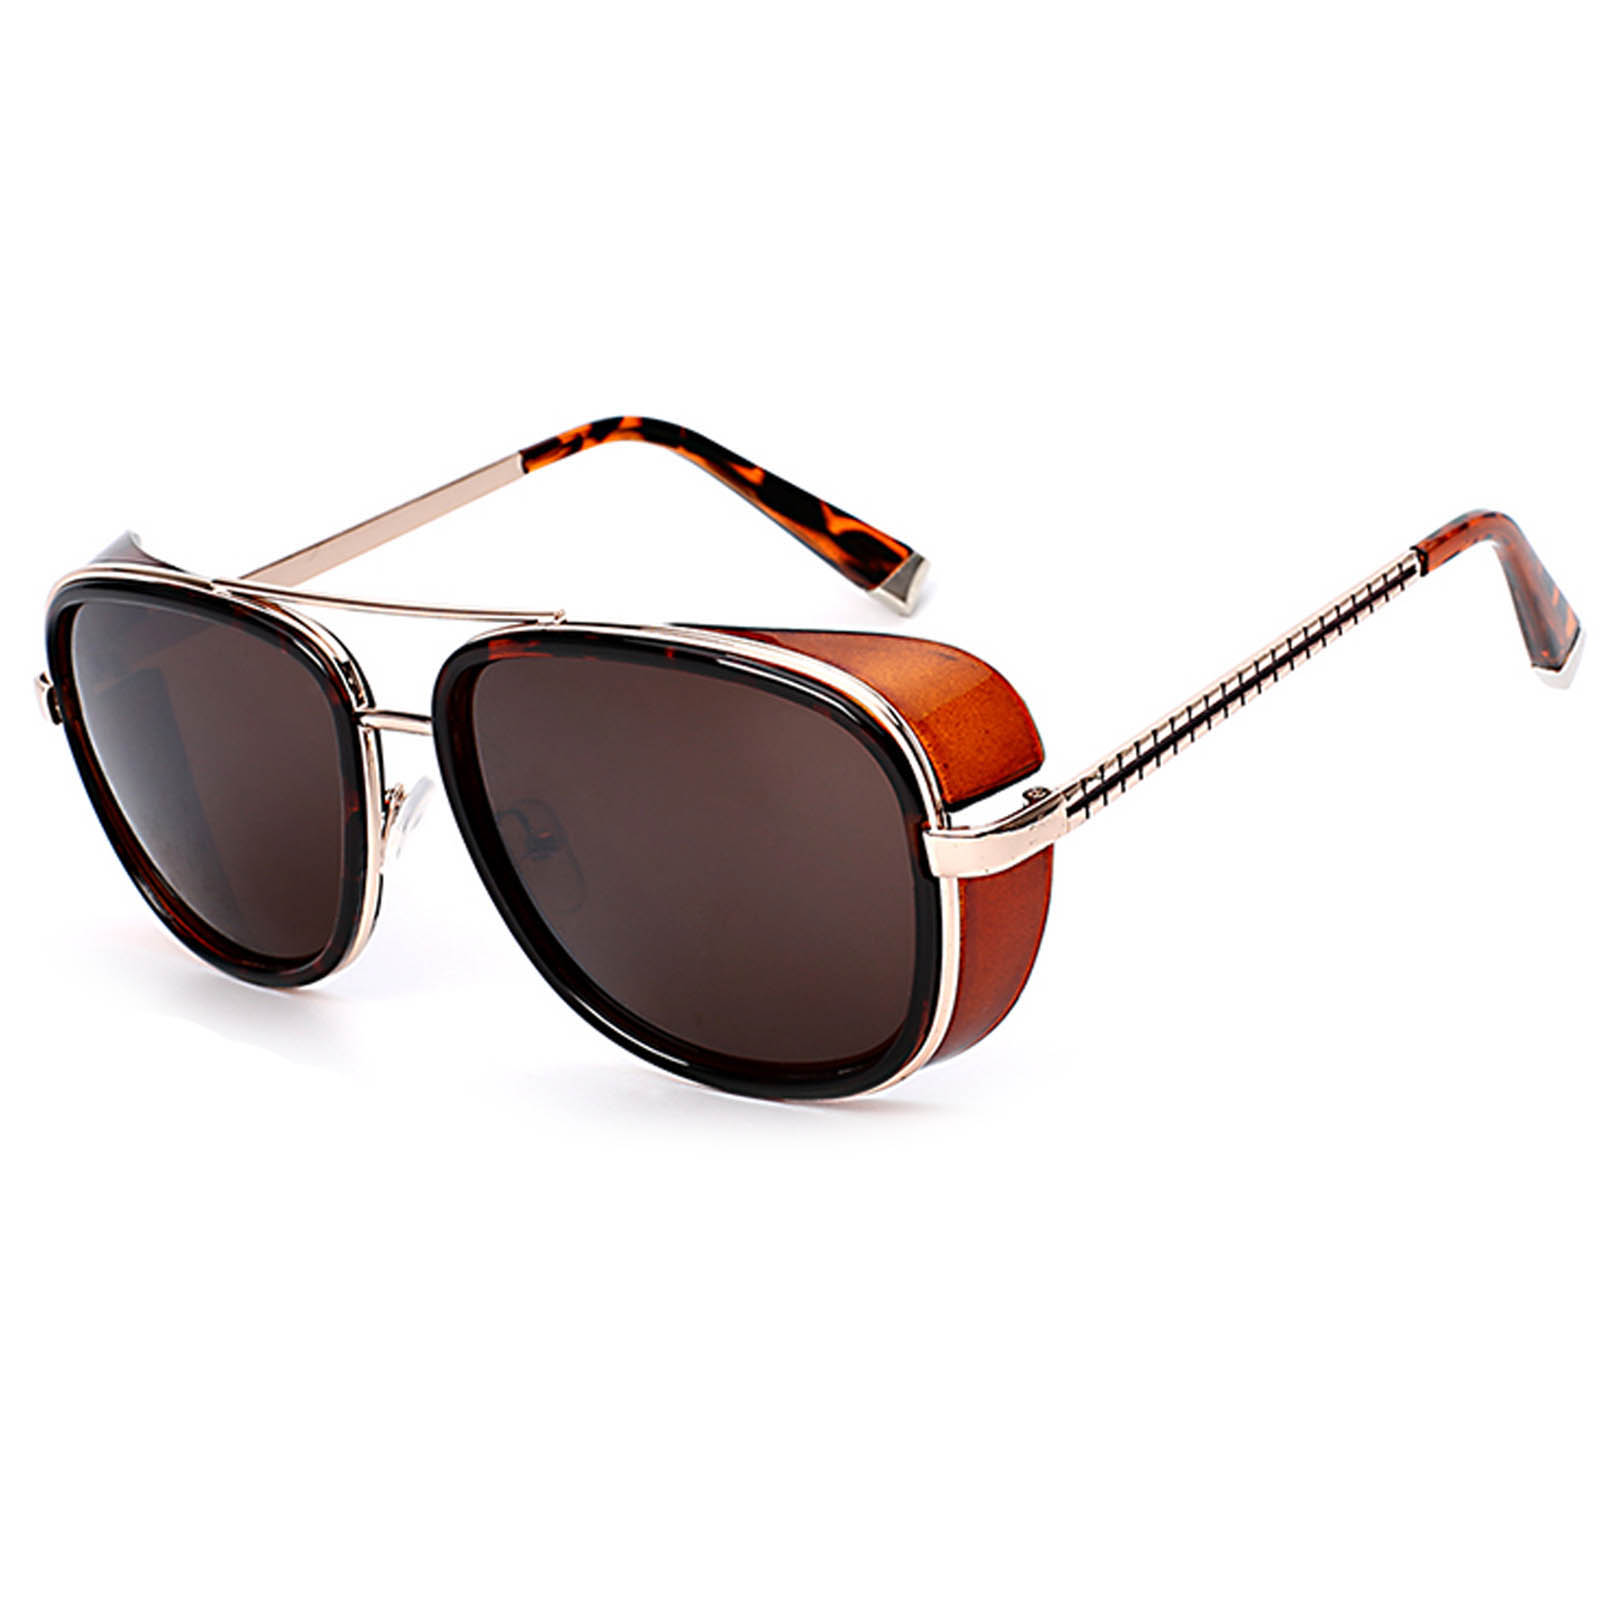 OWL ® 002 C4 Aviator Eyewear Sunglasses Women's Men's Metal Leopard Frame Brown Lens One Pair